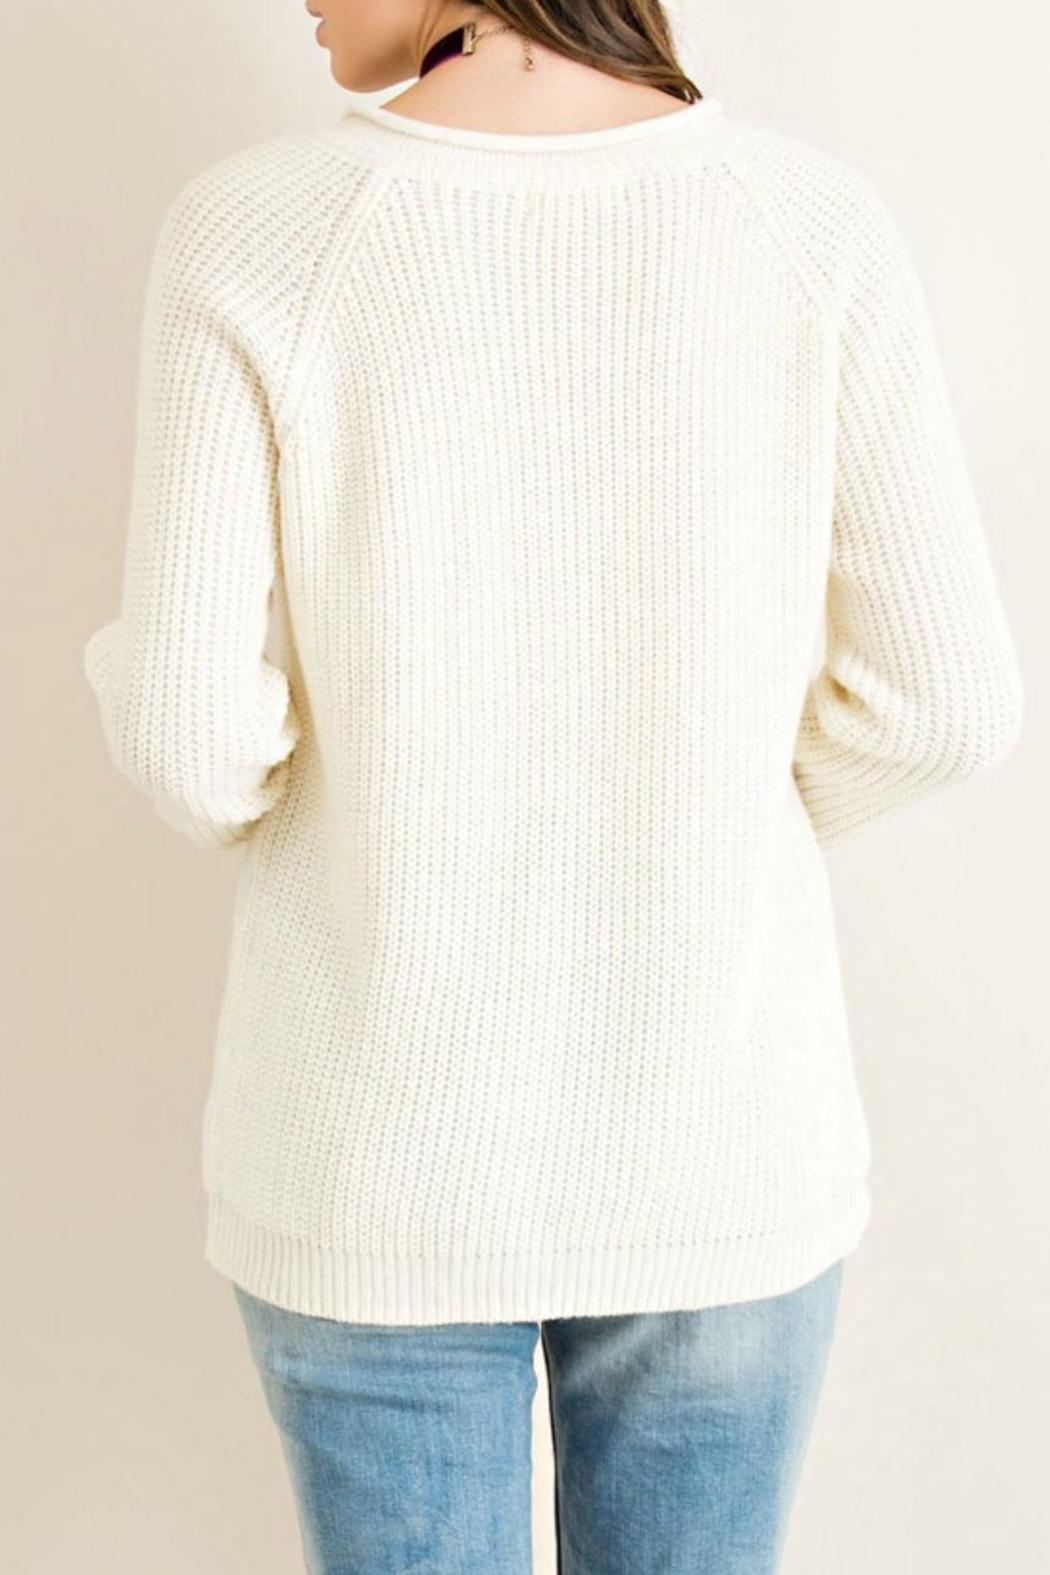 Entro Grommett Lace Sweater - Front Full Image